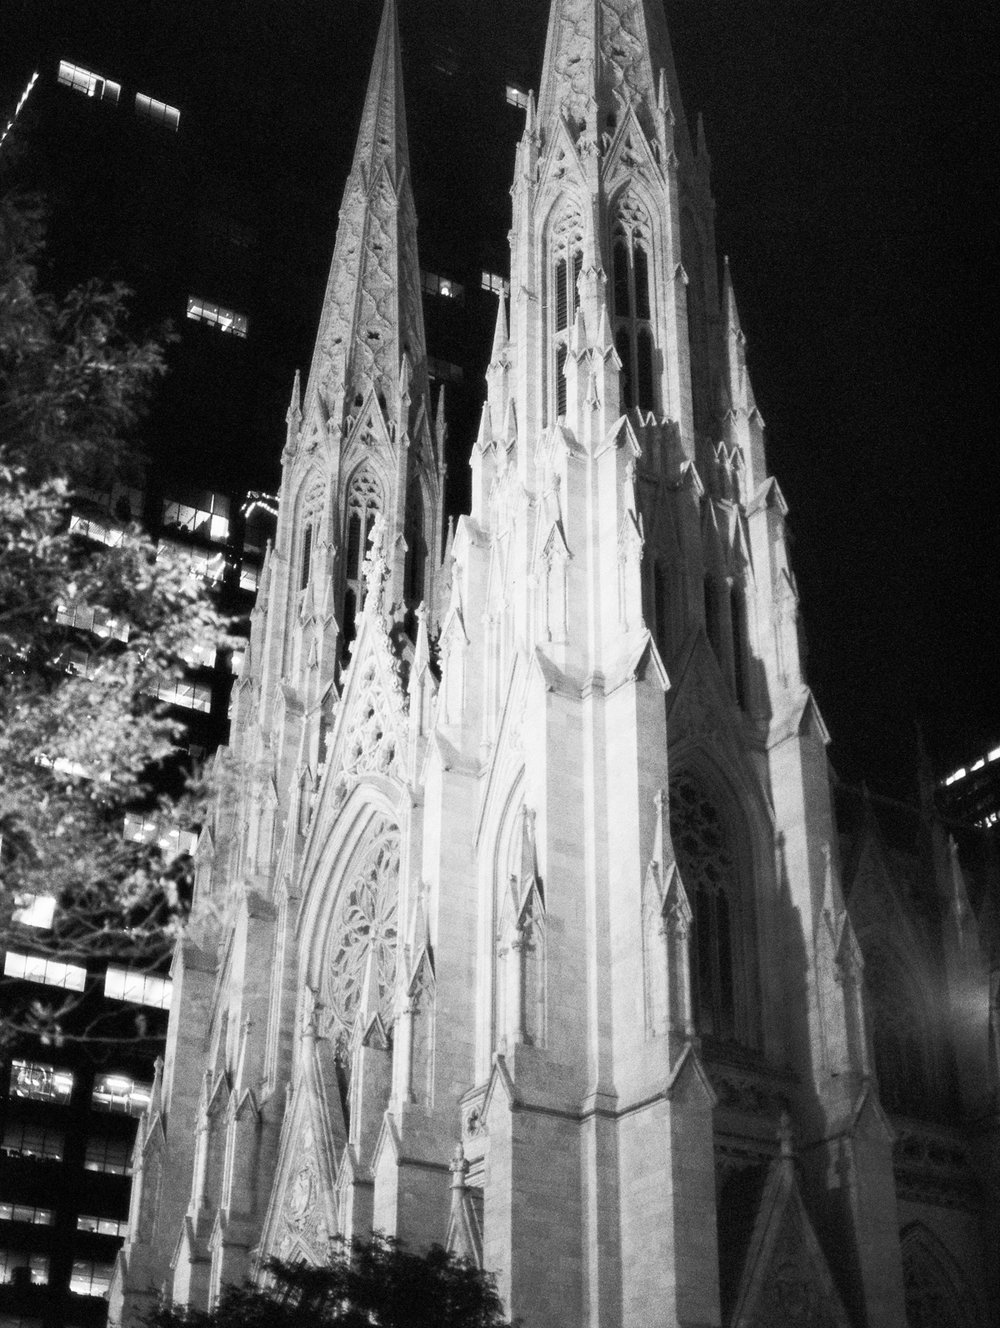 NYC church on black and white film at night. Ilford Delta 3200